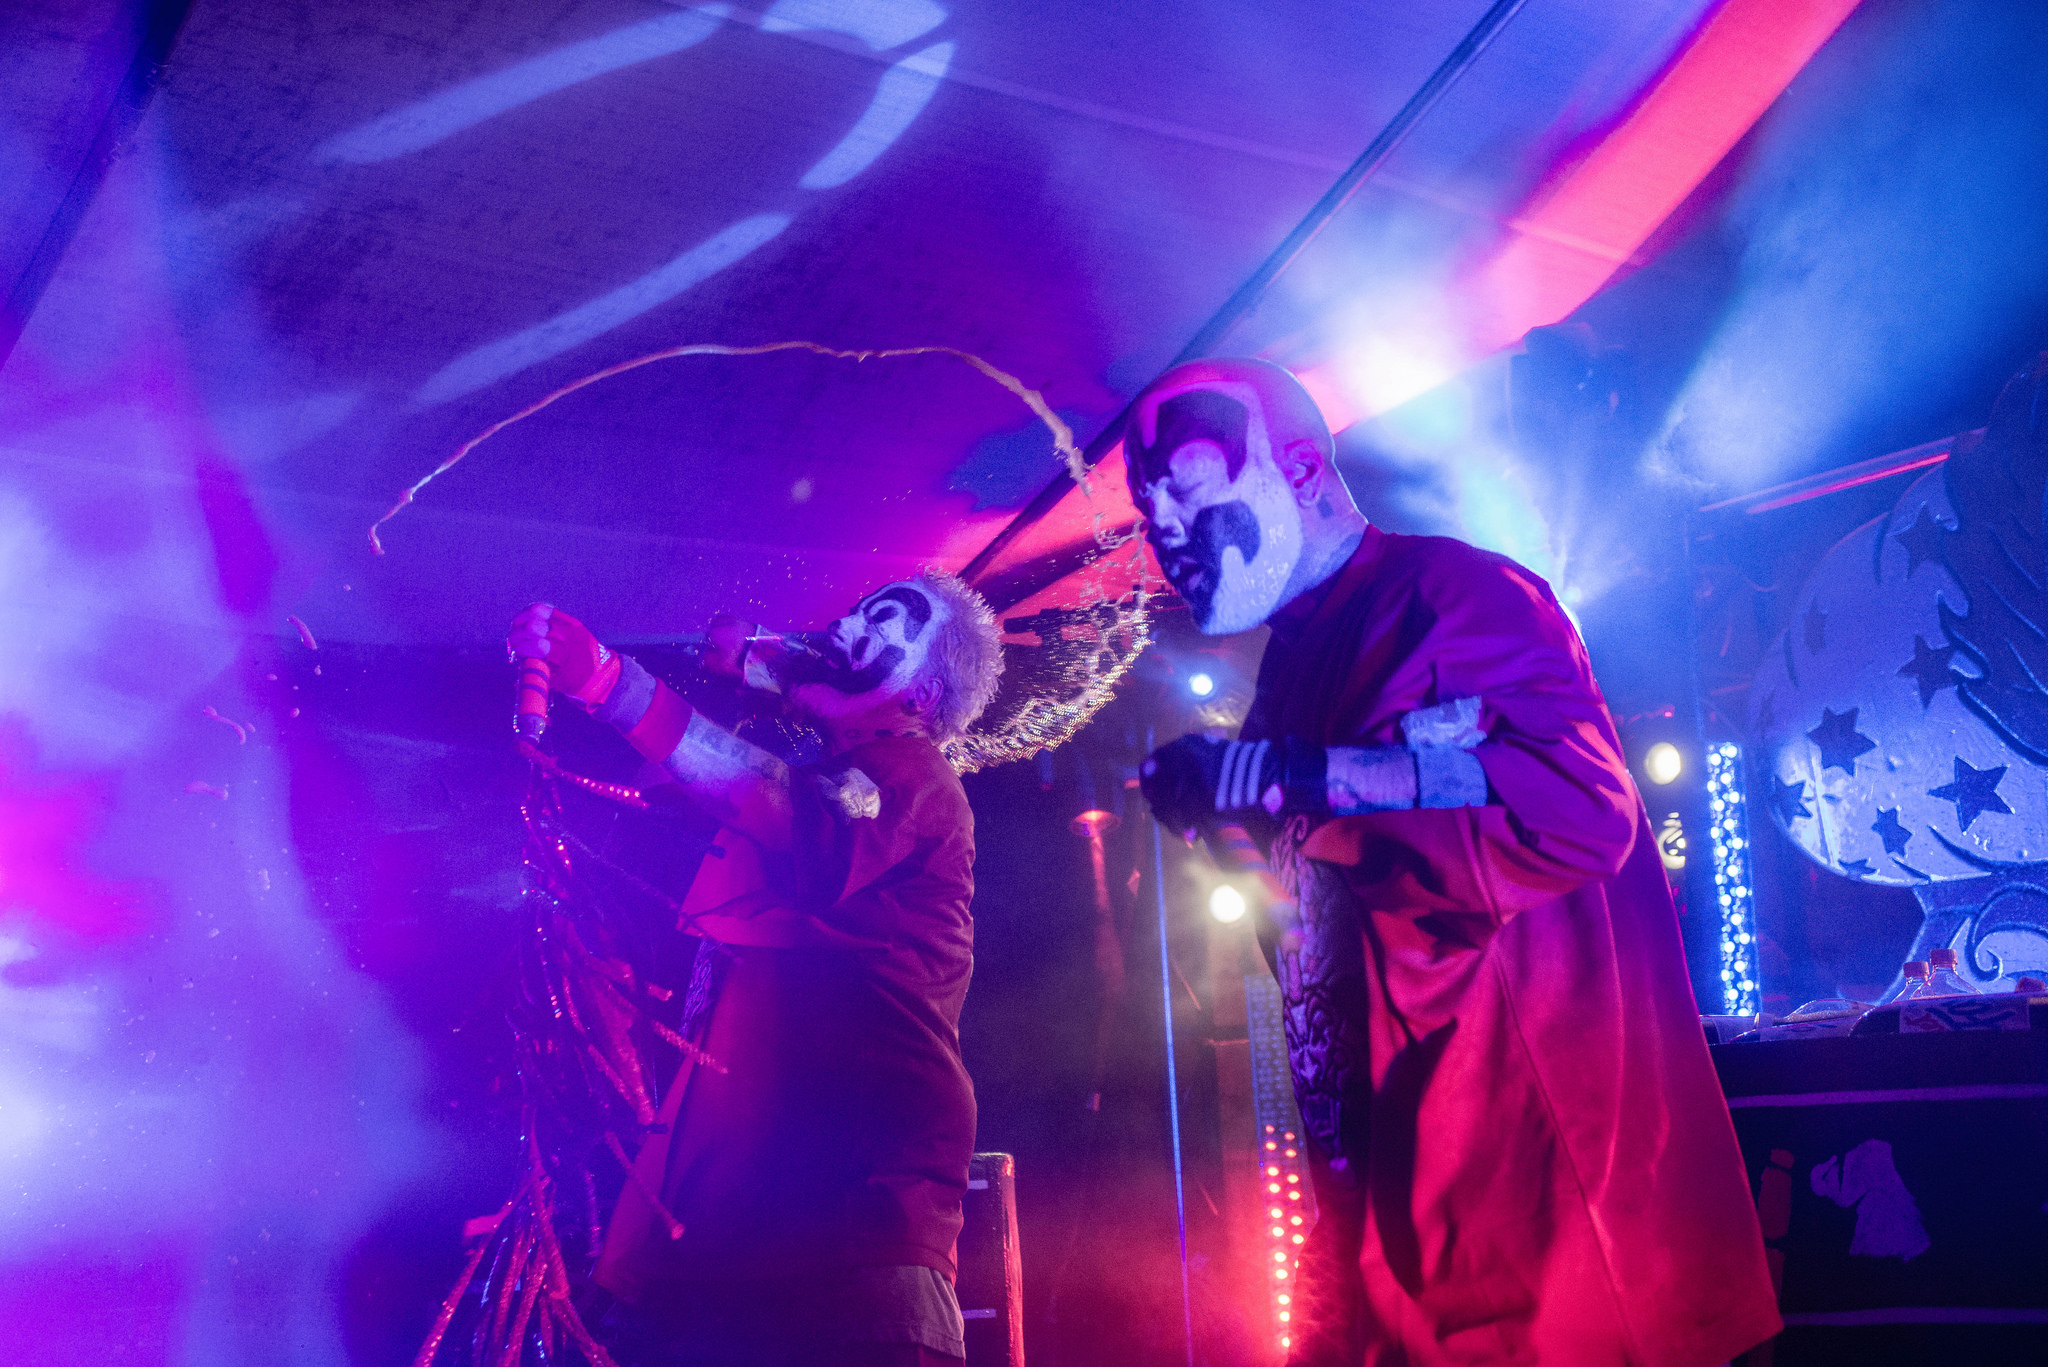 Insane Clown Posse at The Well (October 2017)